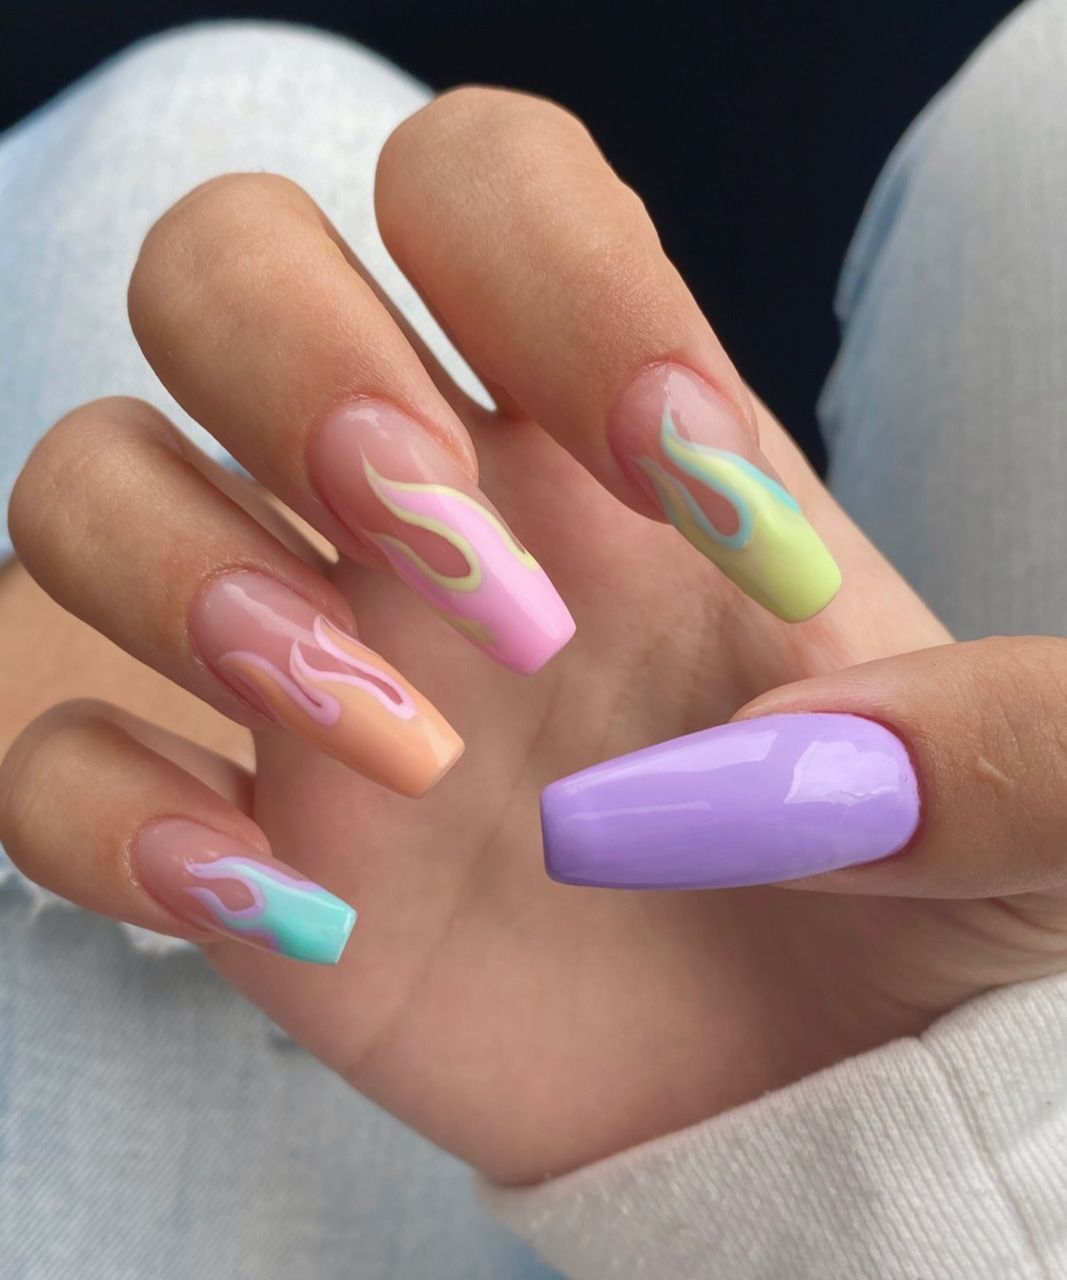 Flame Nails Are the Hottest Nail Art Trend RN